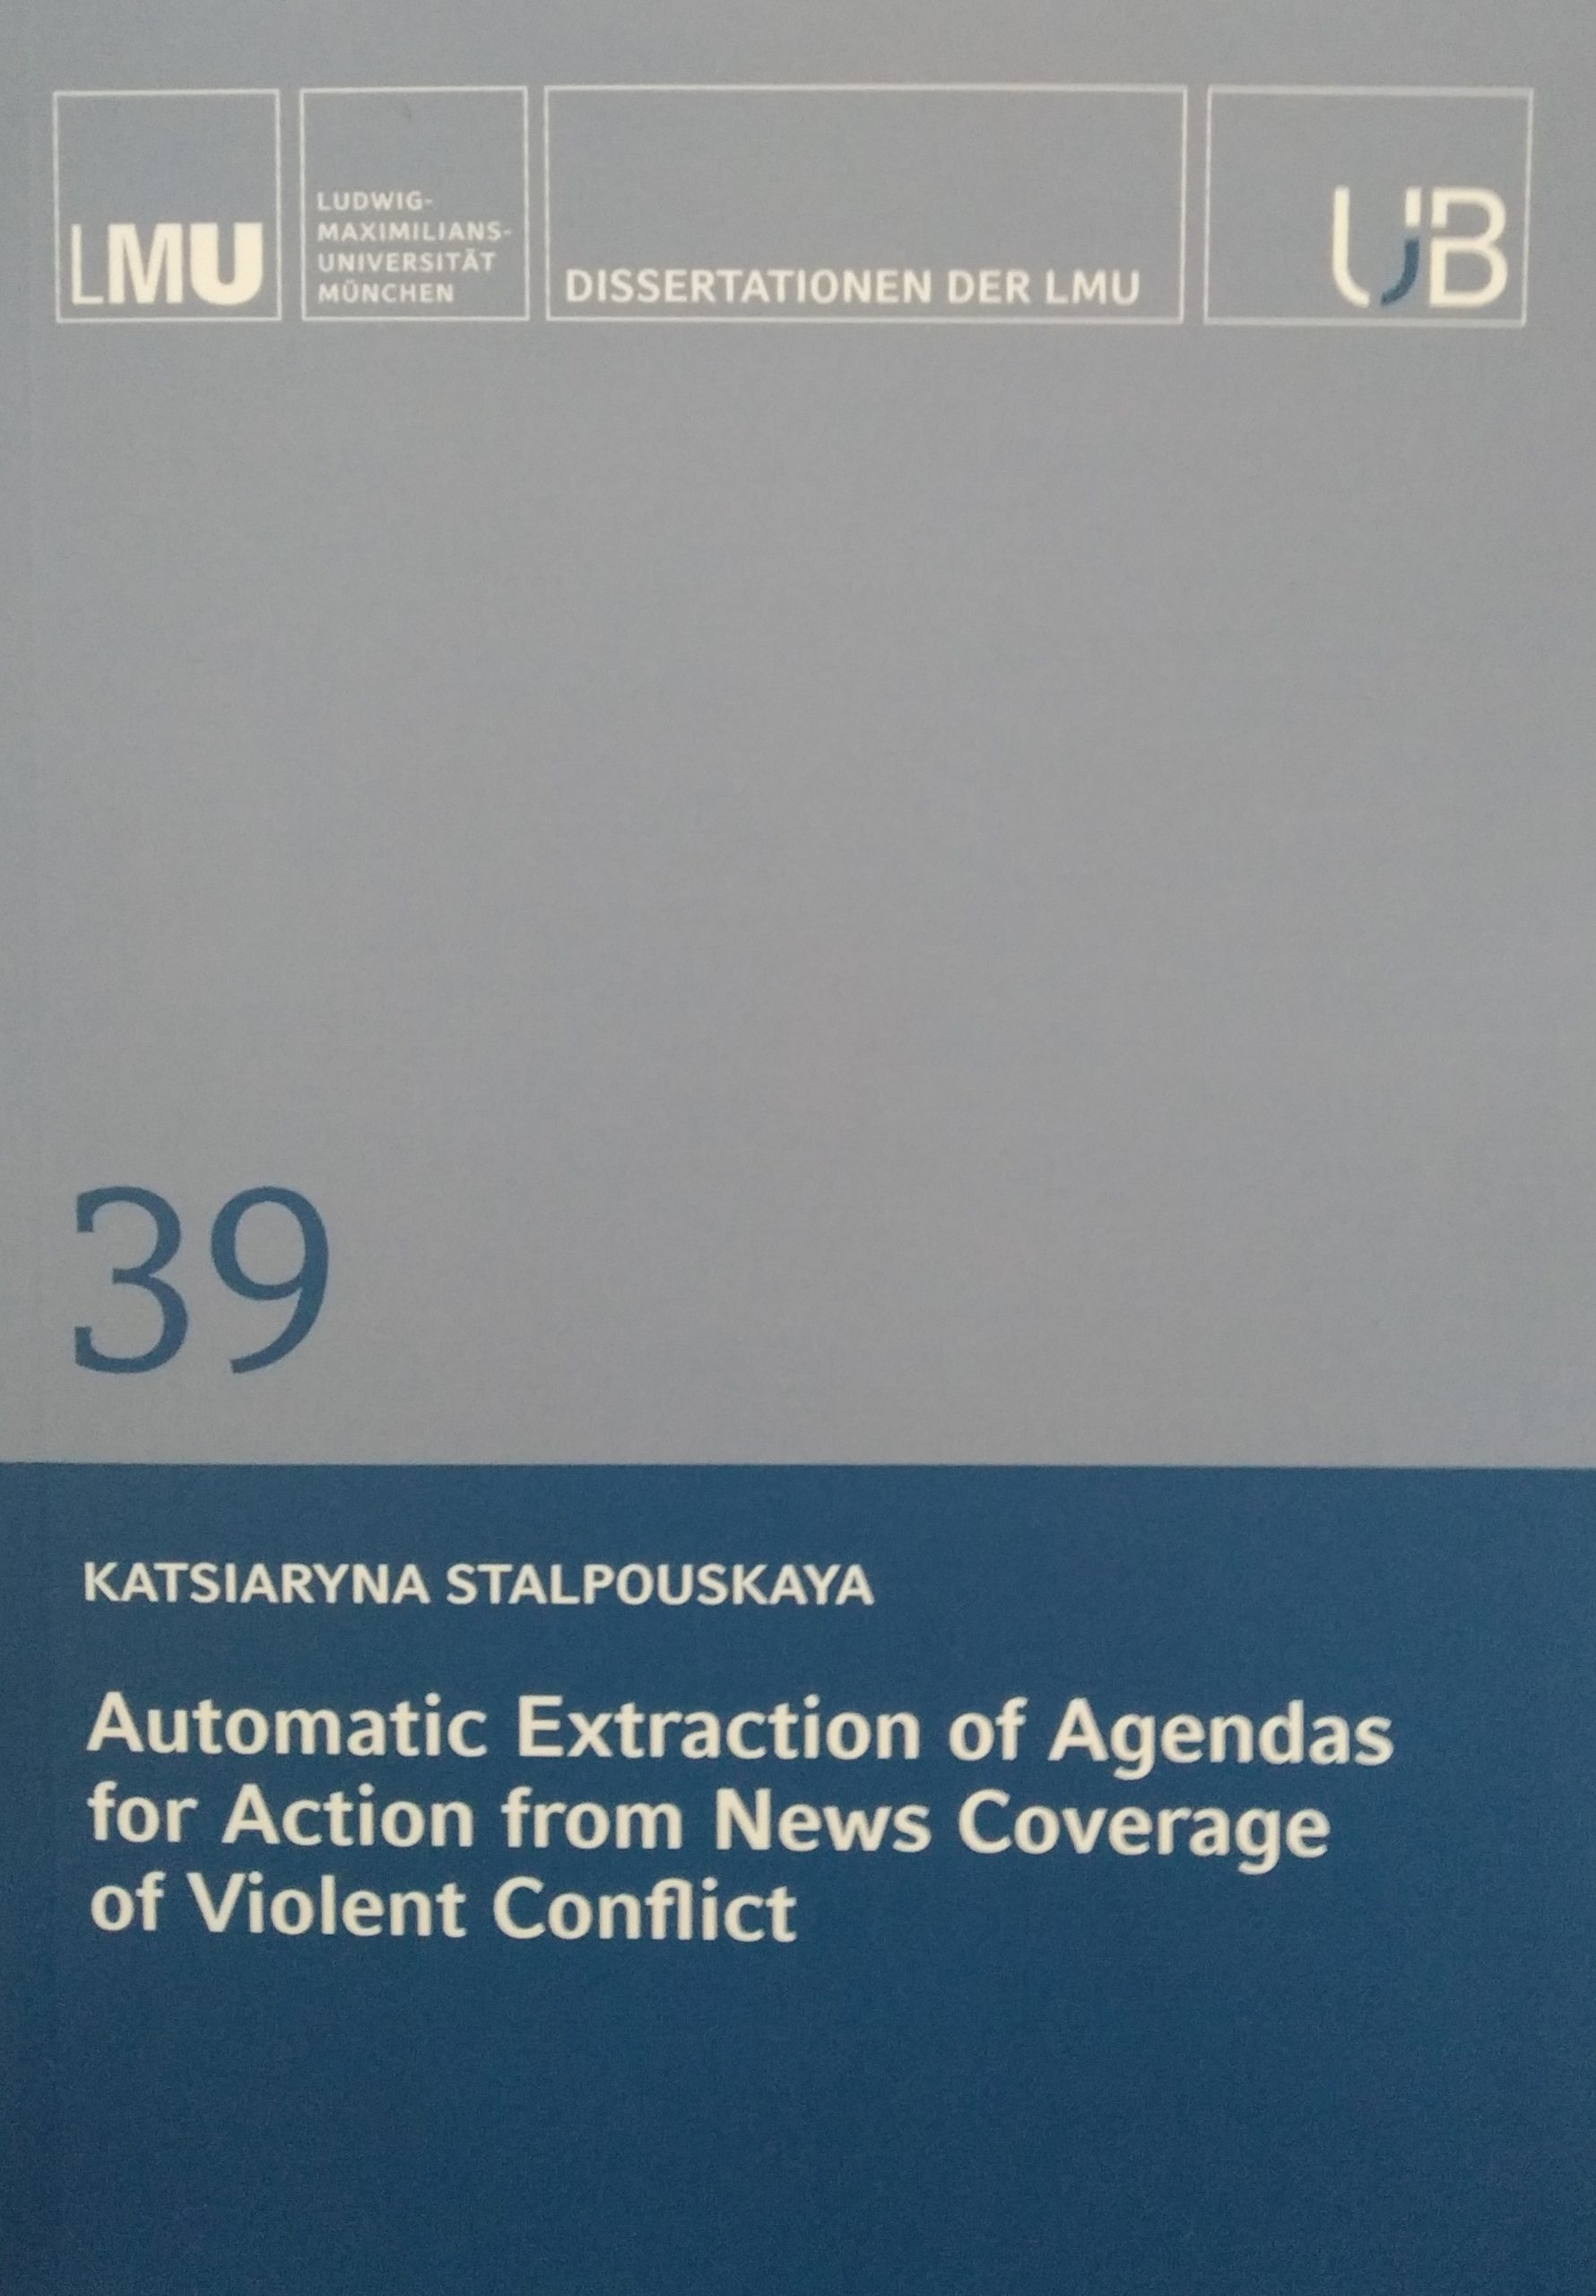 Automatic Extraction of Agendas for Action from News Coverage of Violent Conflict